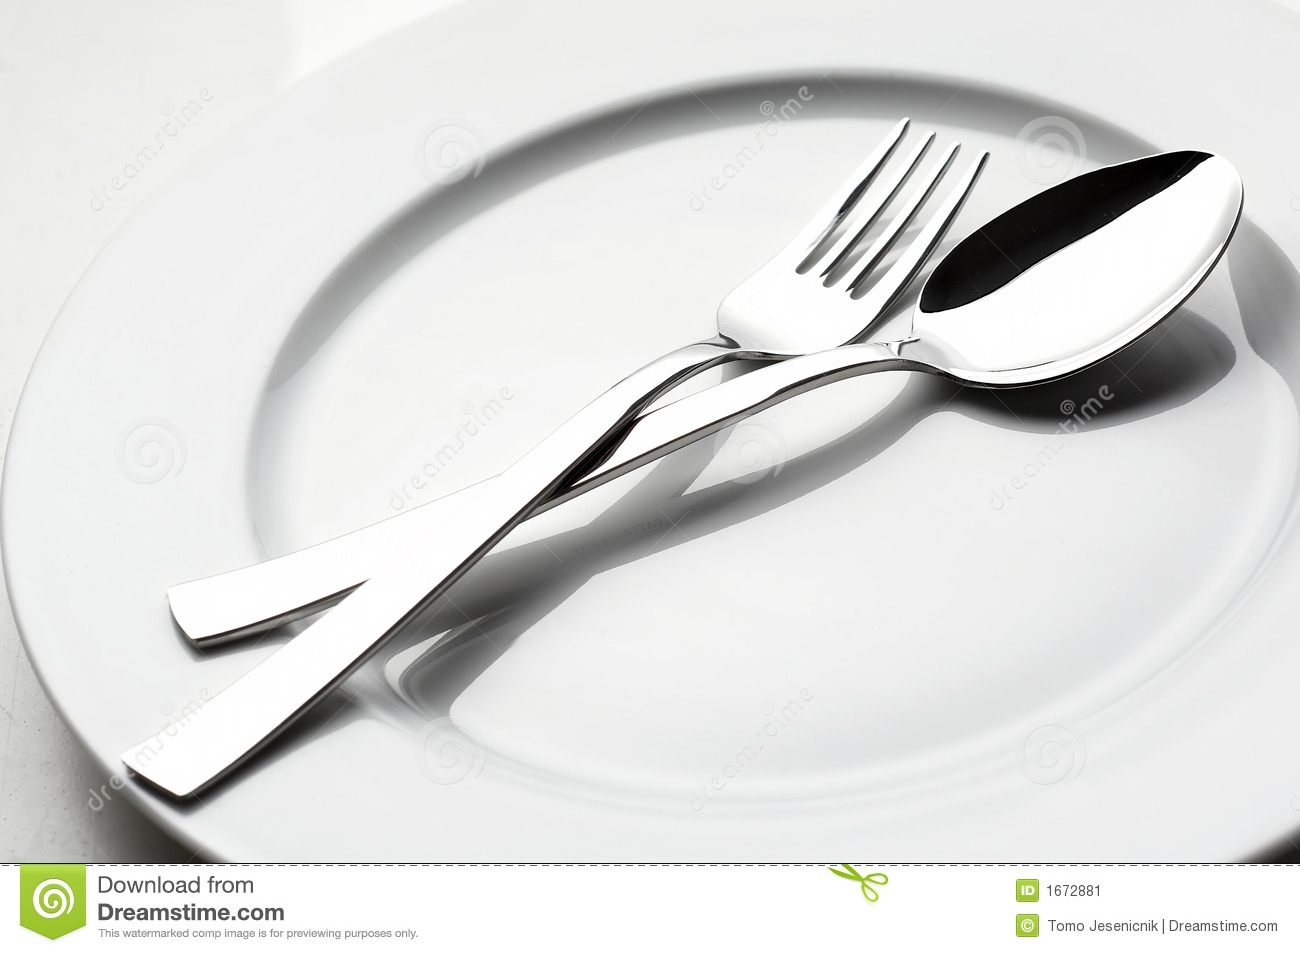 Fork And Spoon On White Plate Stock Image - Image: 1672881